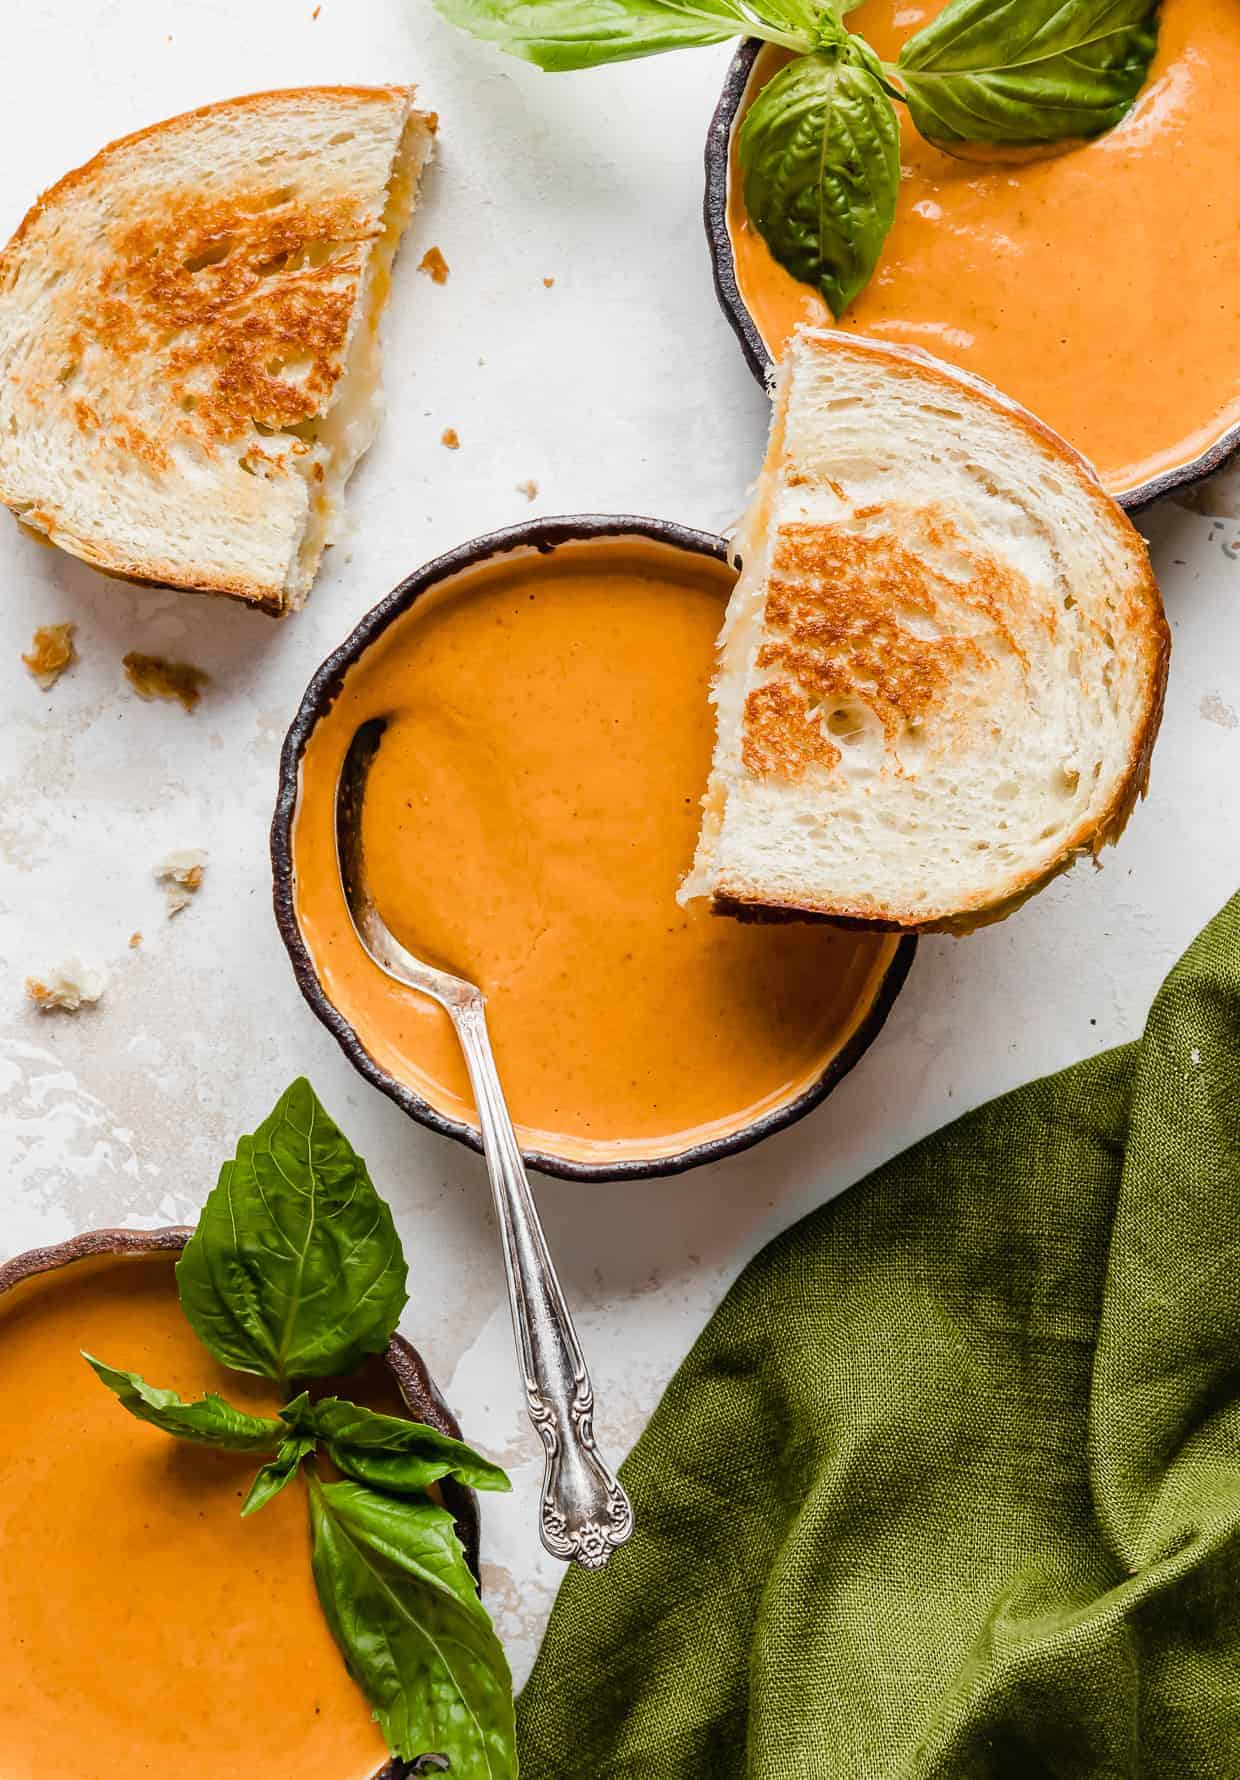 A black bowl full of creamy tomato basil soup on a white textured background.